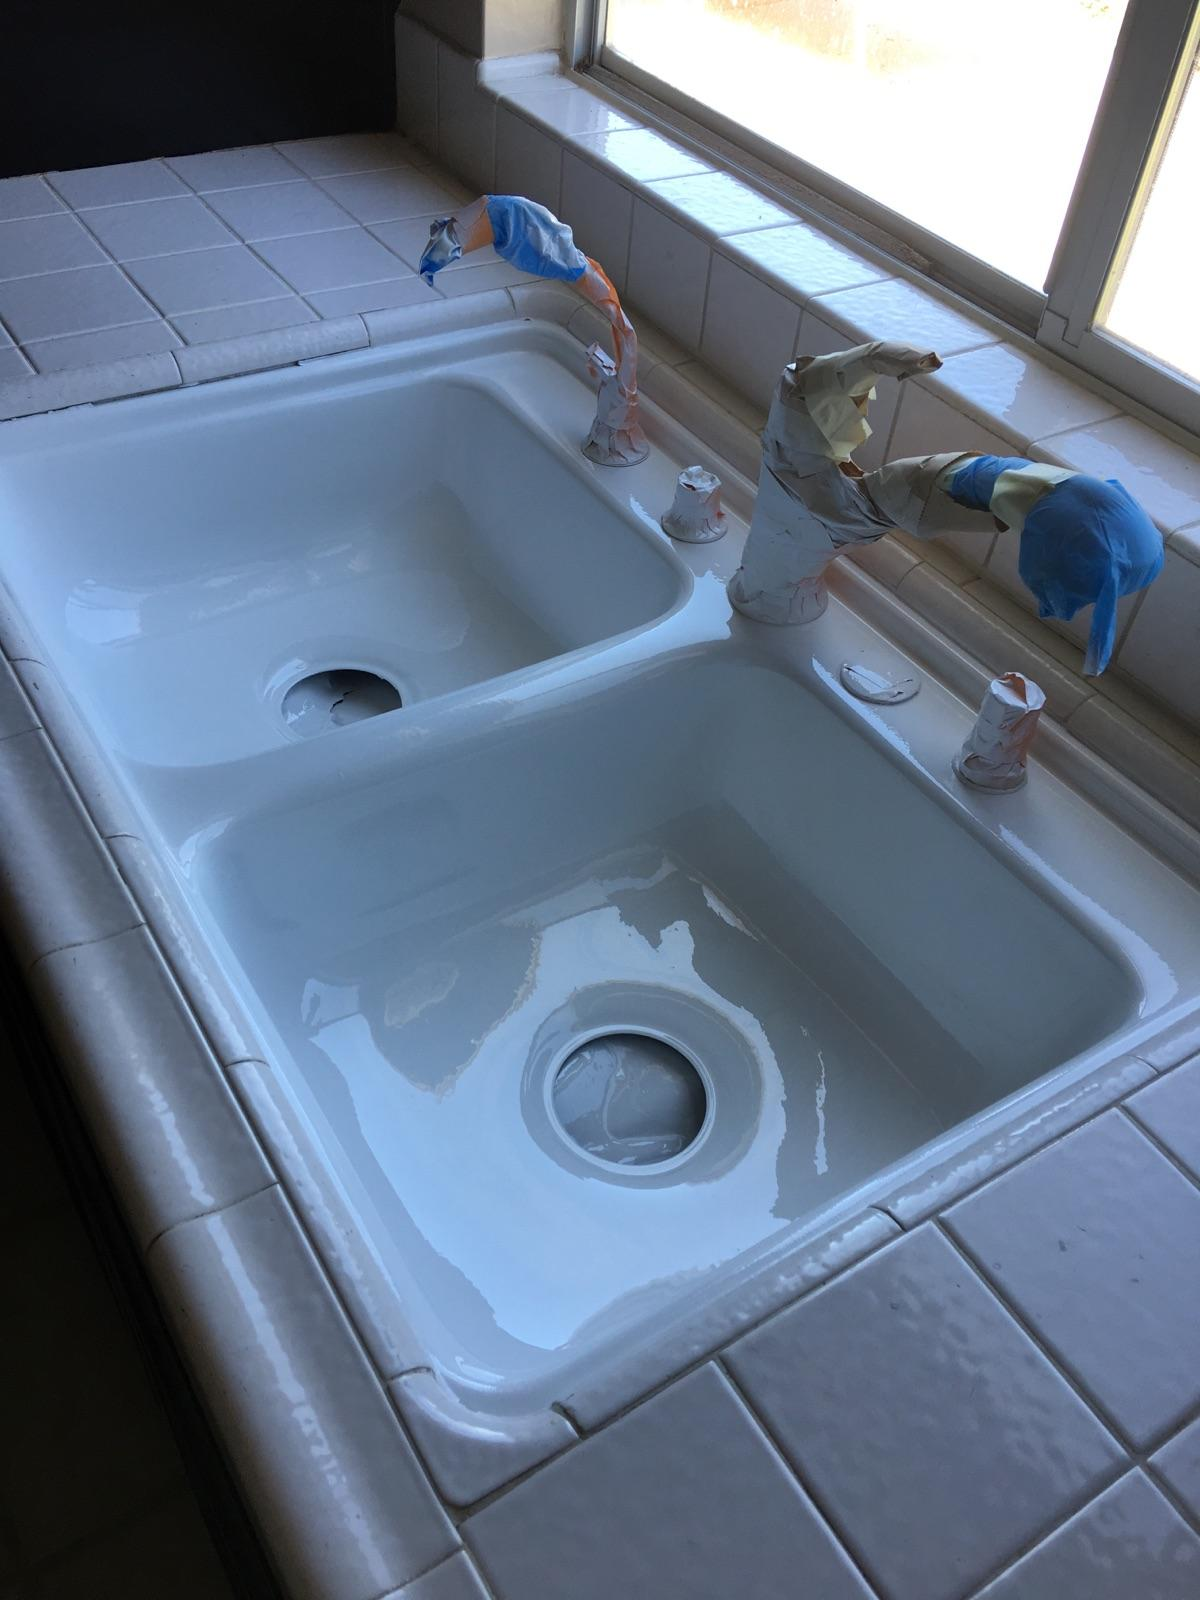 Porcelain Kitchen Sink-B.jpg